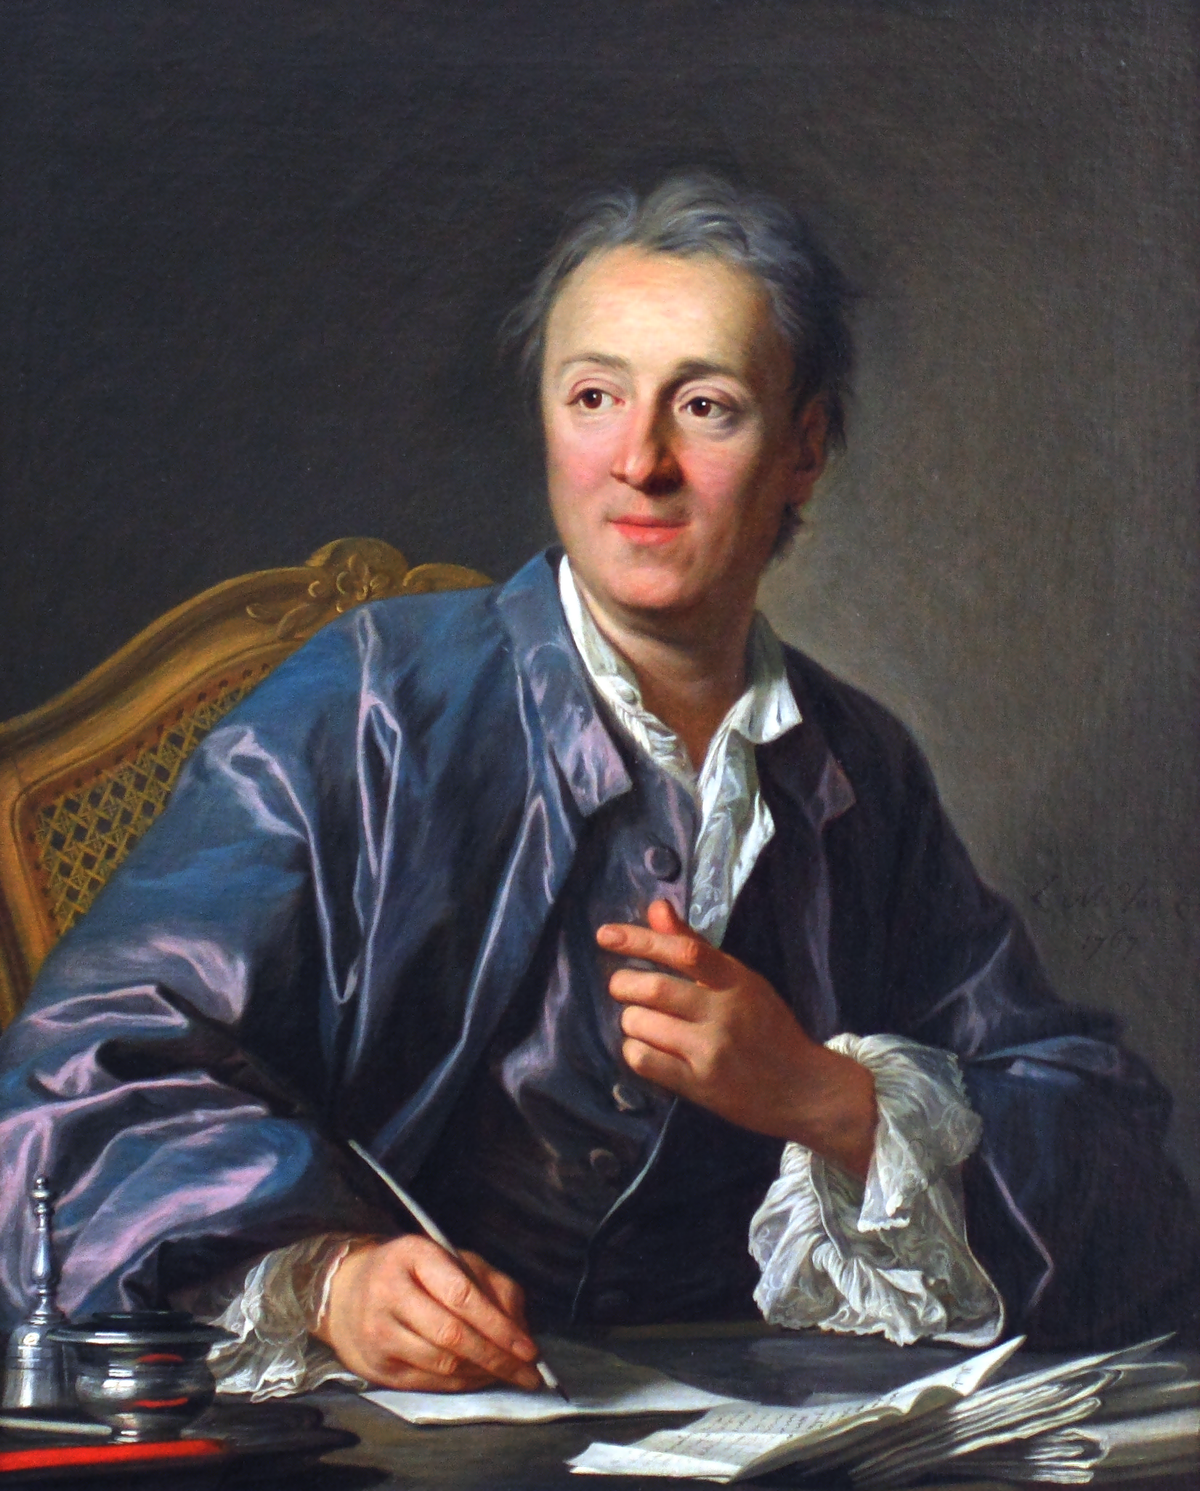 lettre de motivation wiki Denis Diderot   Wikipedia lettre de motivation wiki